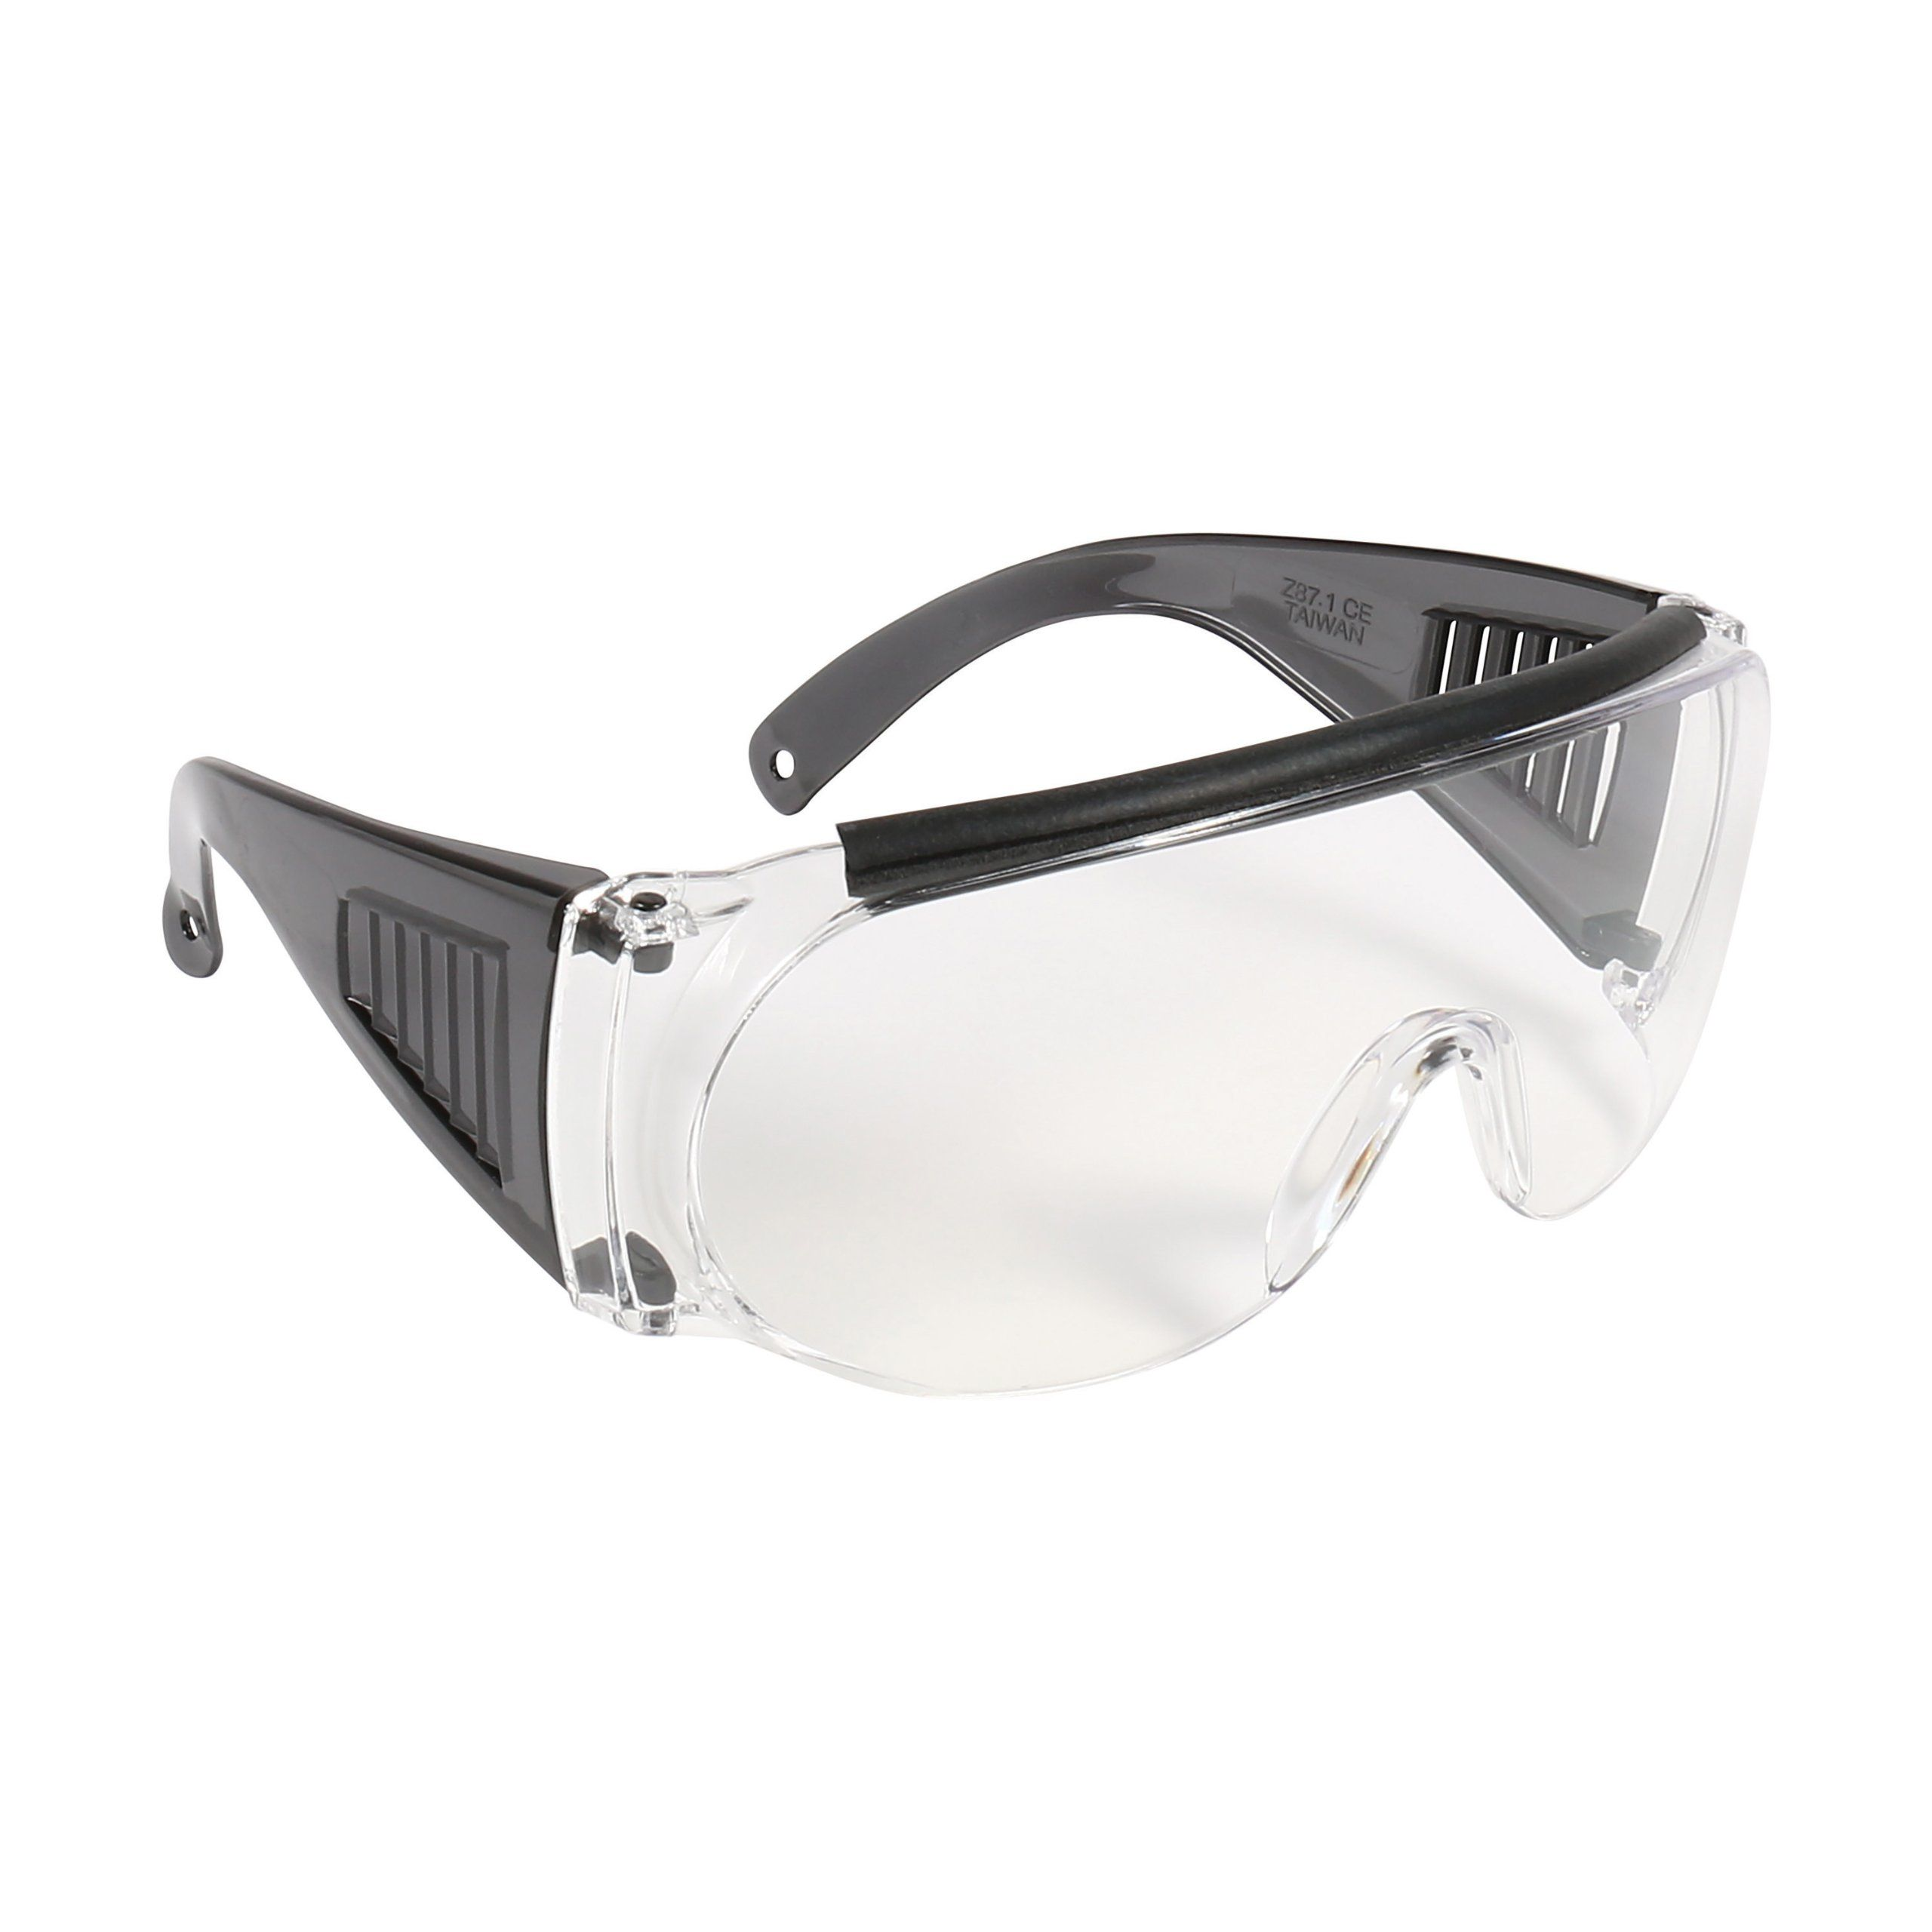 Allen company fitover shooting safety glasses